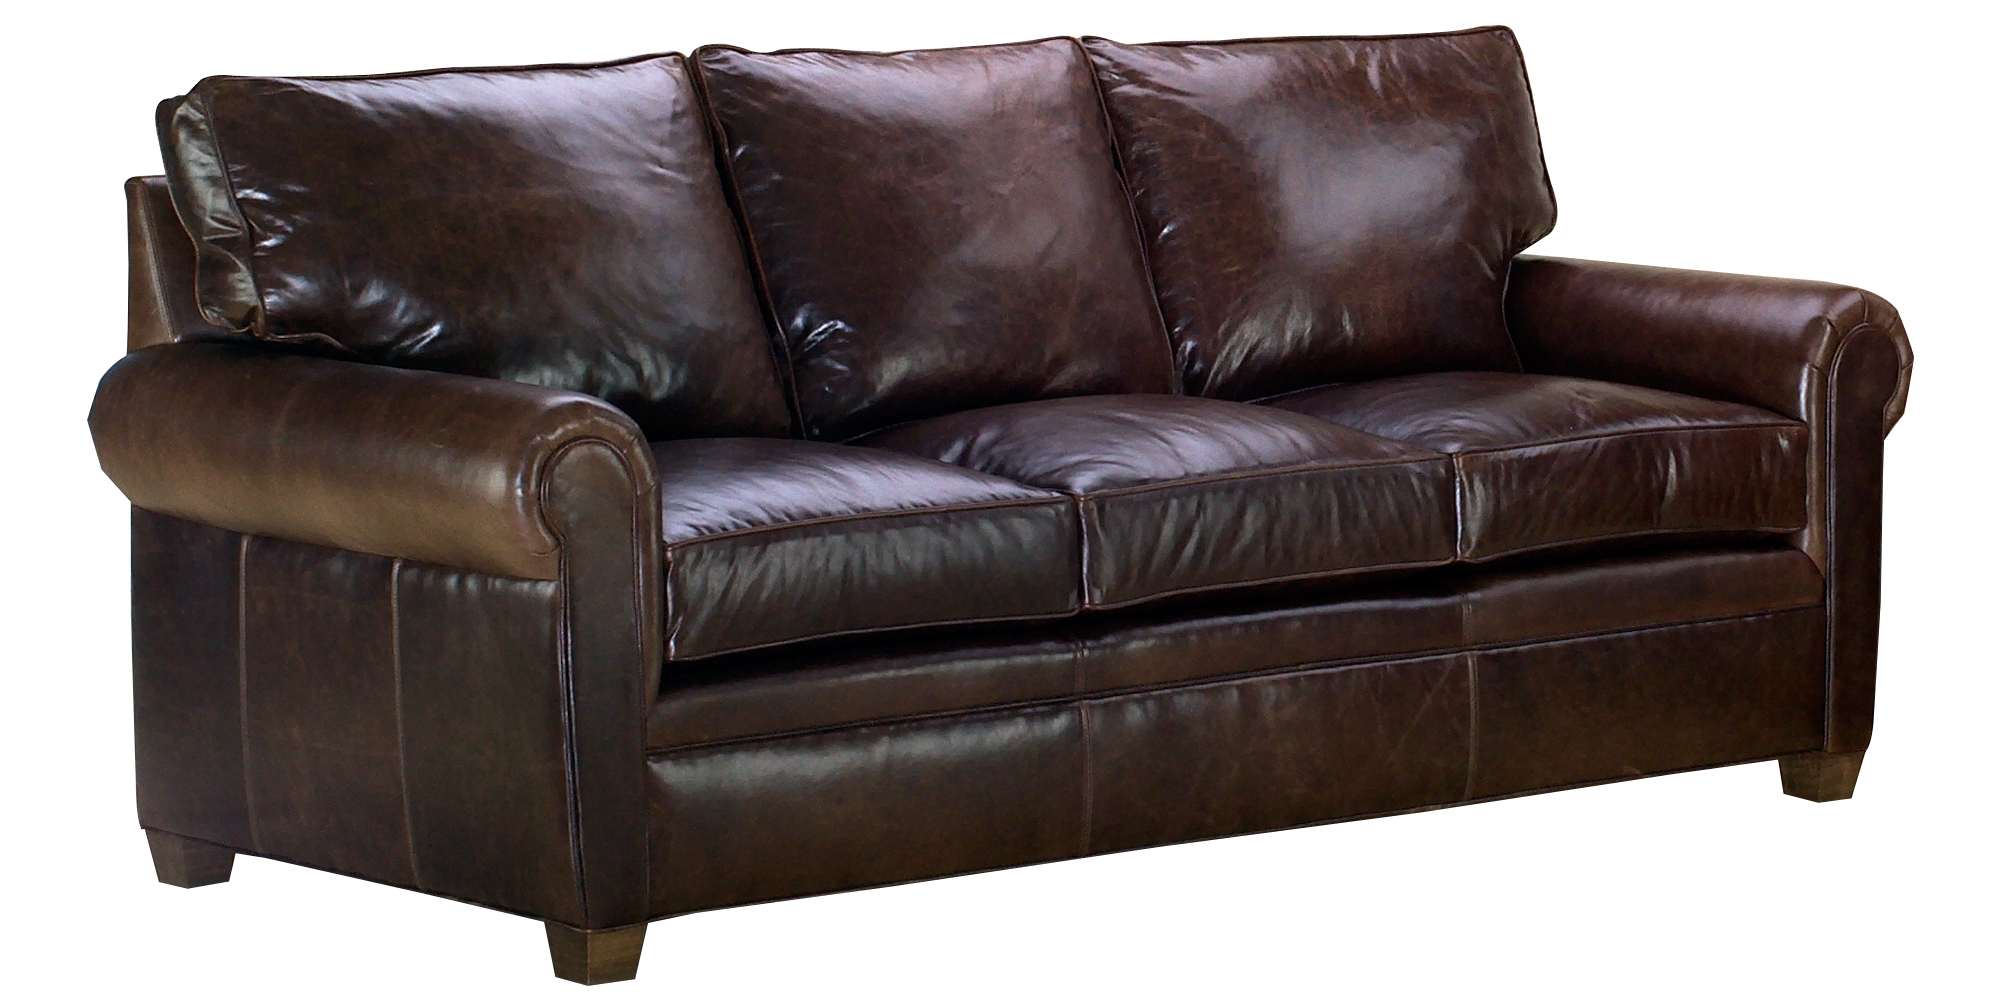 Classic Leather Sofa Set With Traditional Rolled Arms